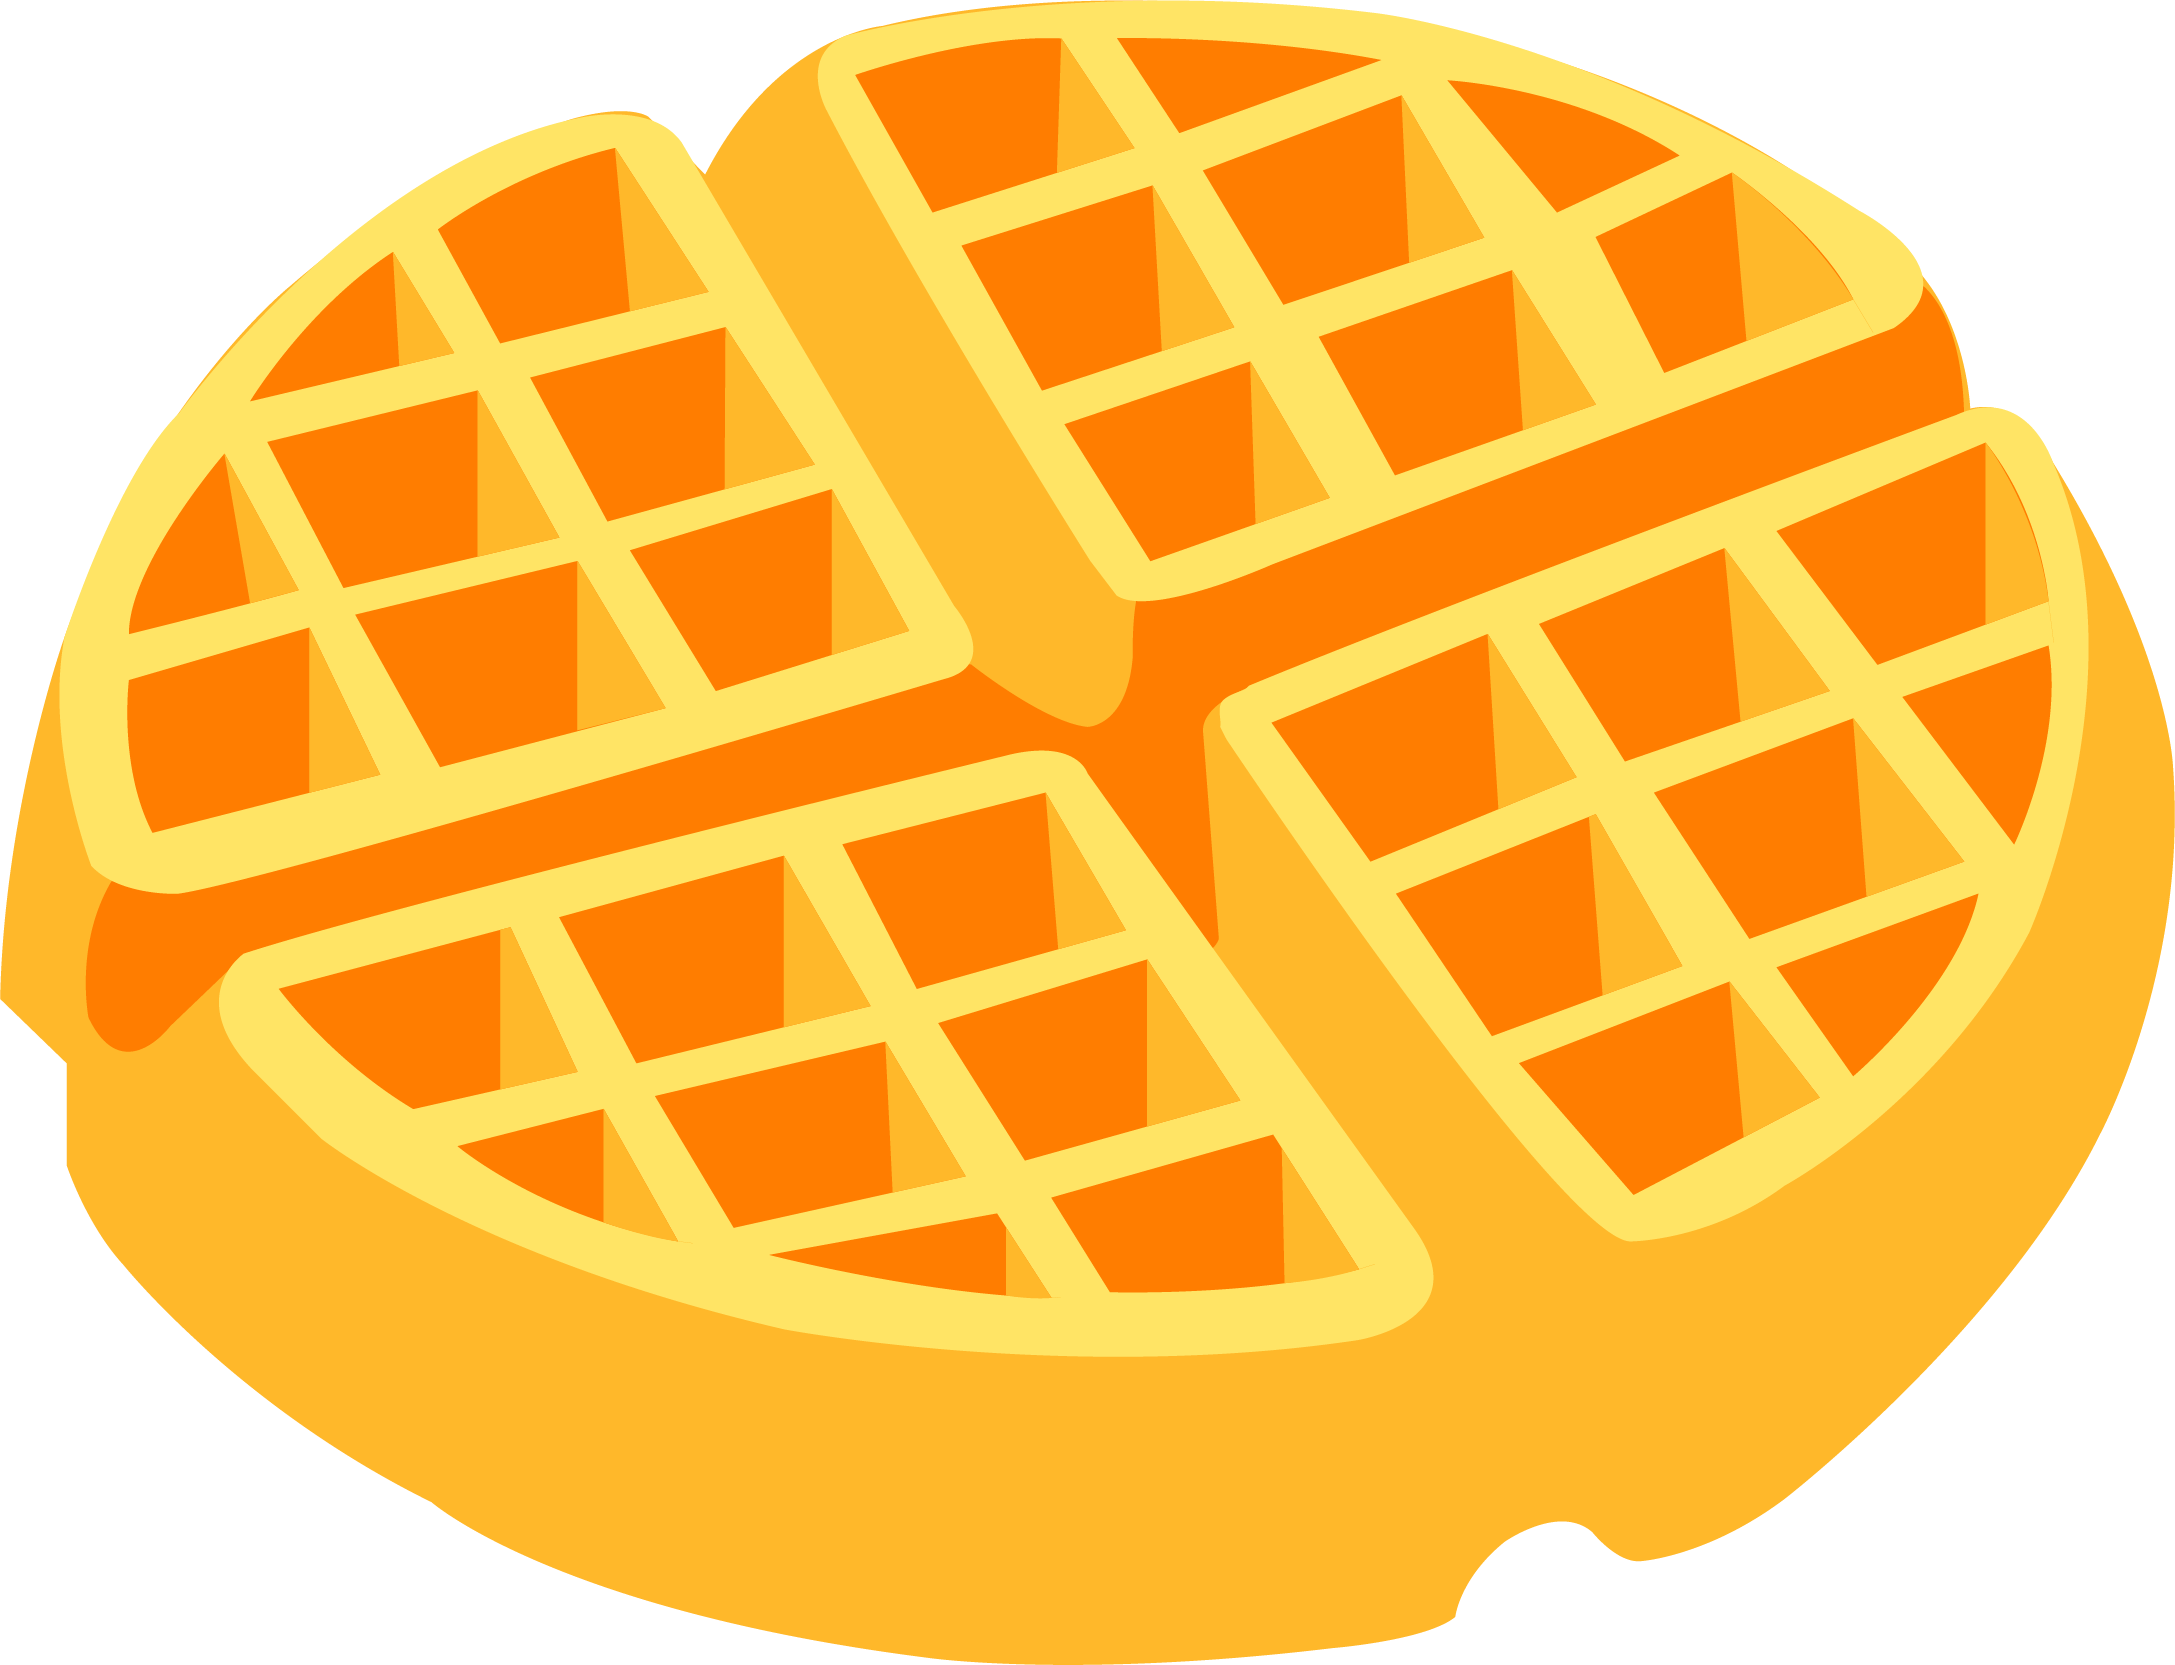 Layouts artsy ayesh for. Waffle clipart circular